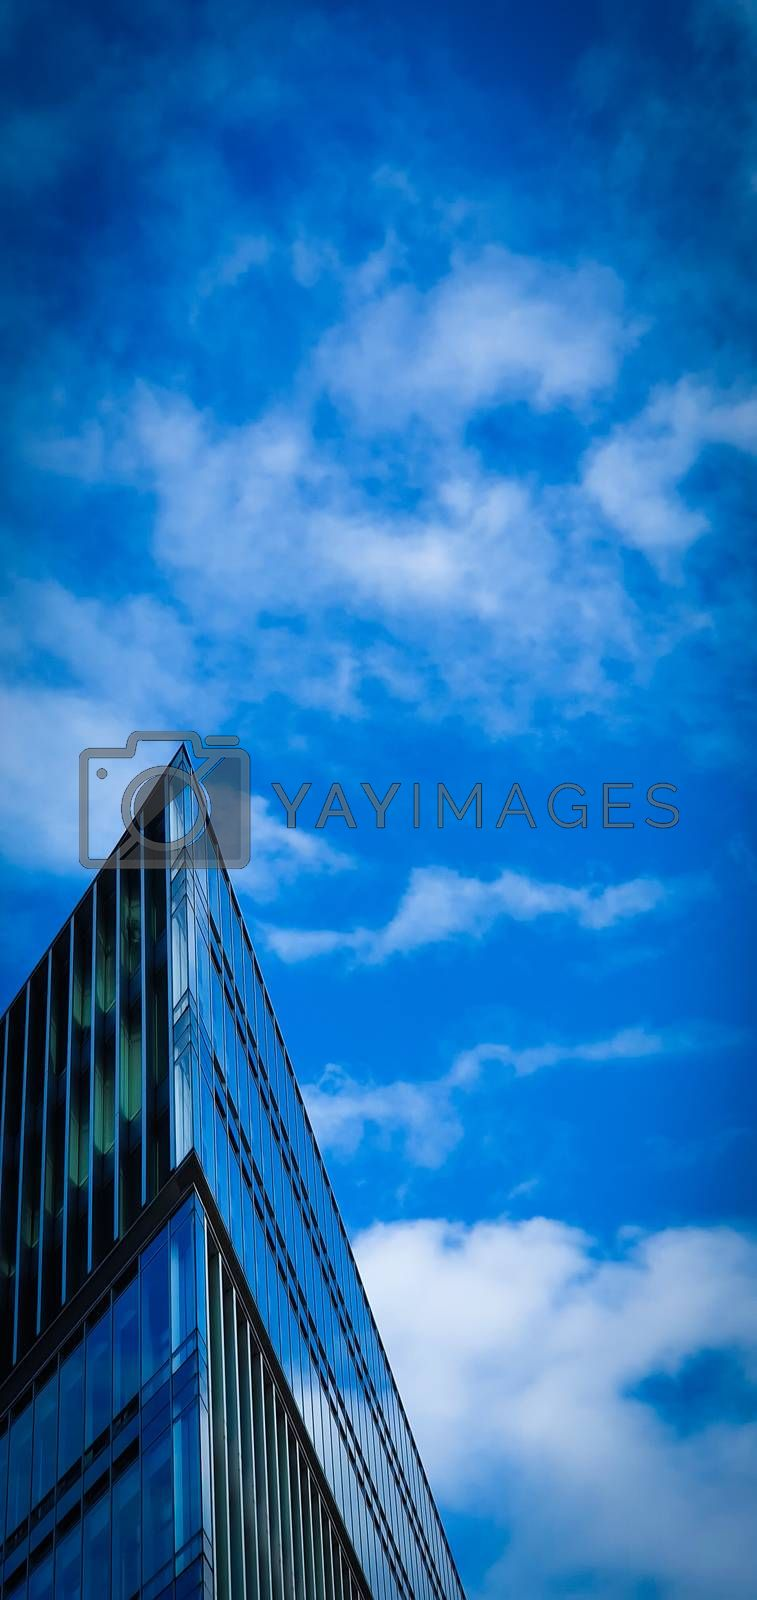 Modern Architecture. Minimal Aesthetics. Low angle view of a futuristic triangular building against a clear blue sky background. Corner building.